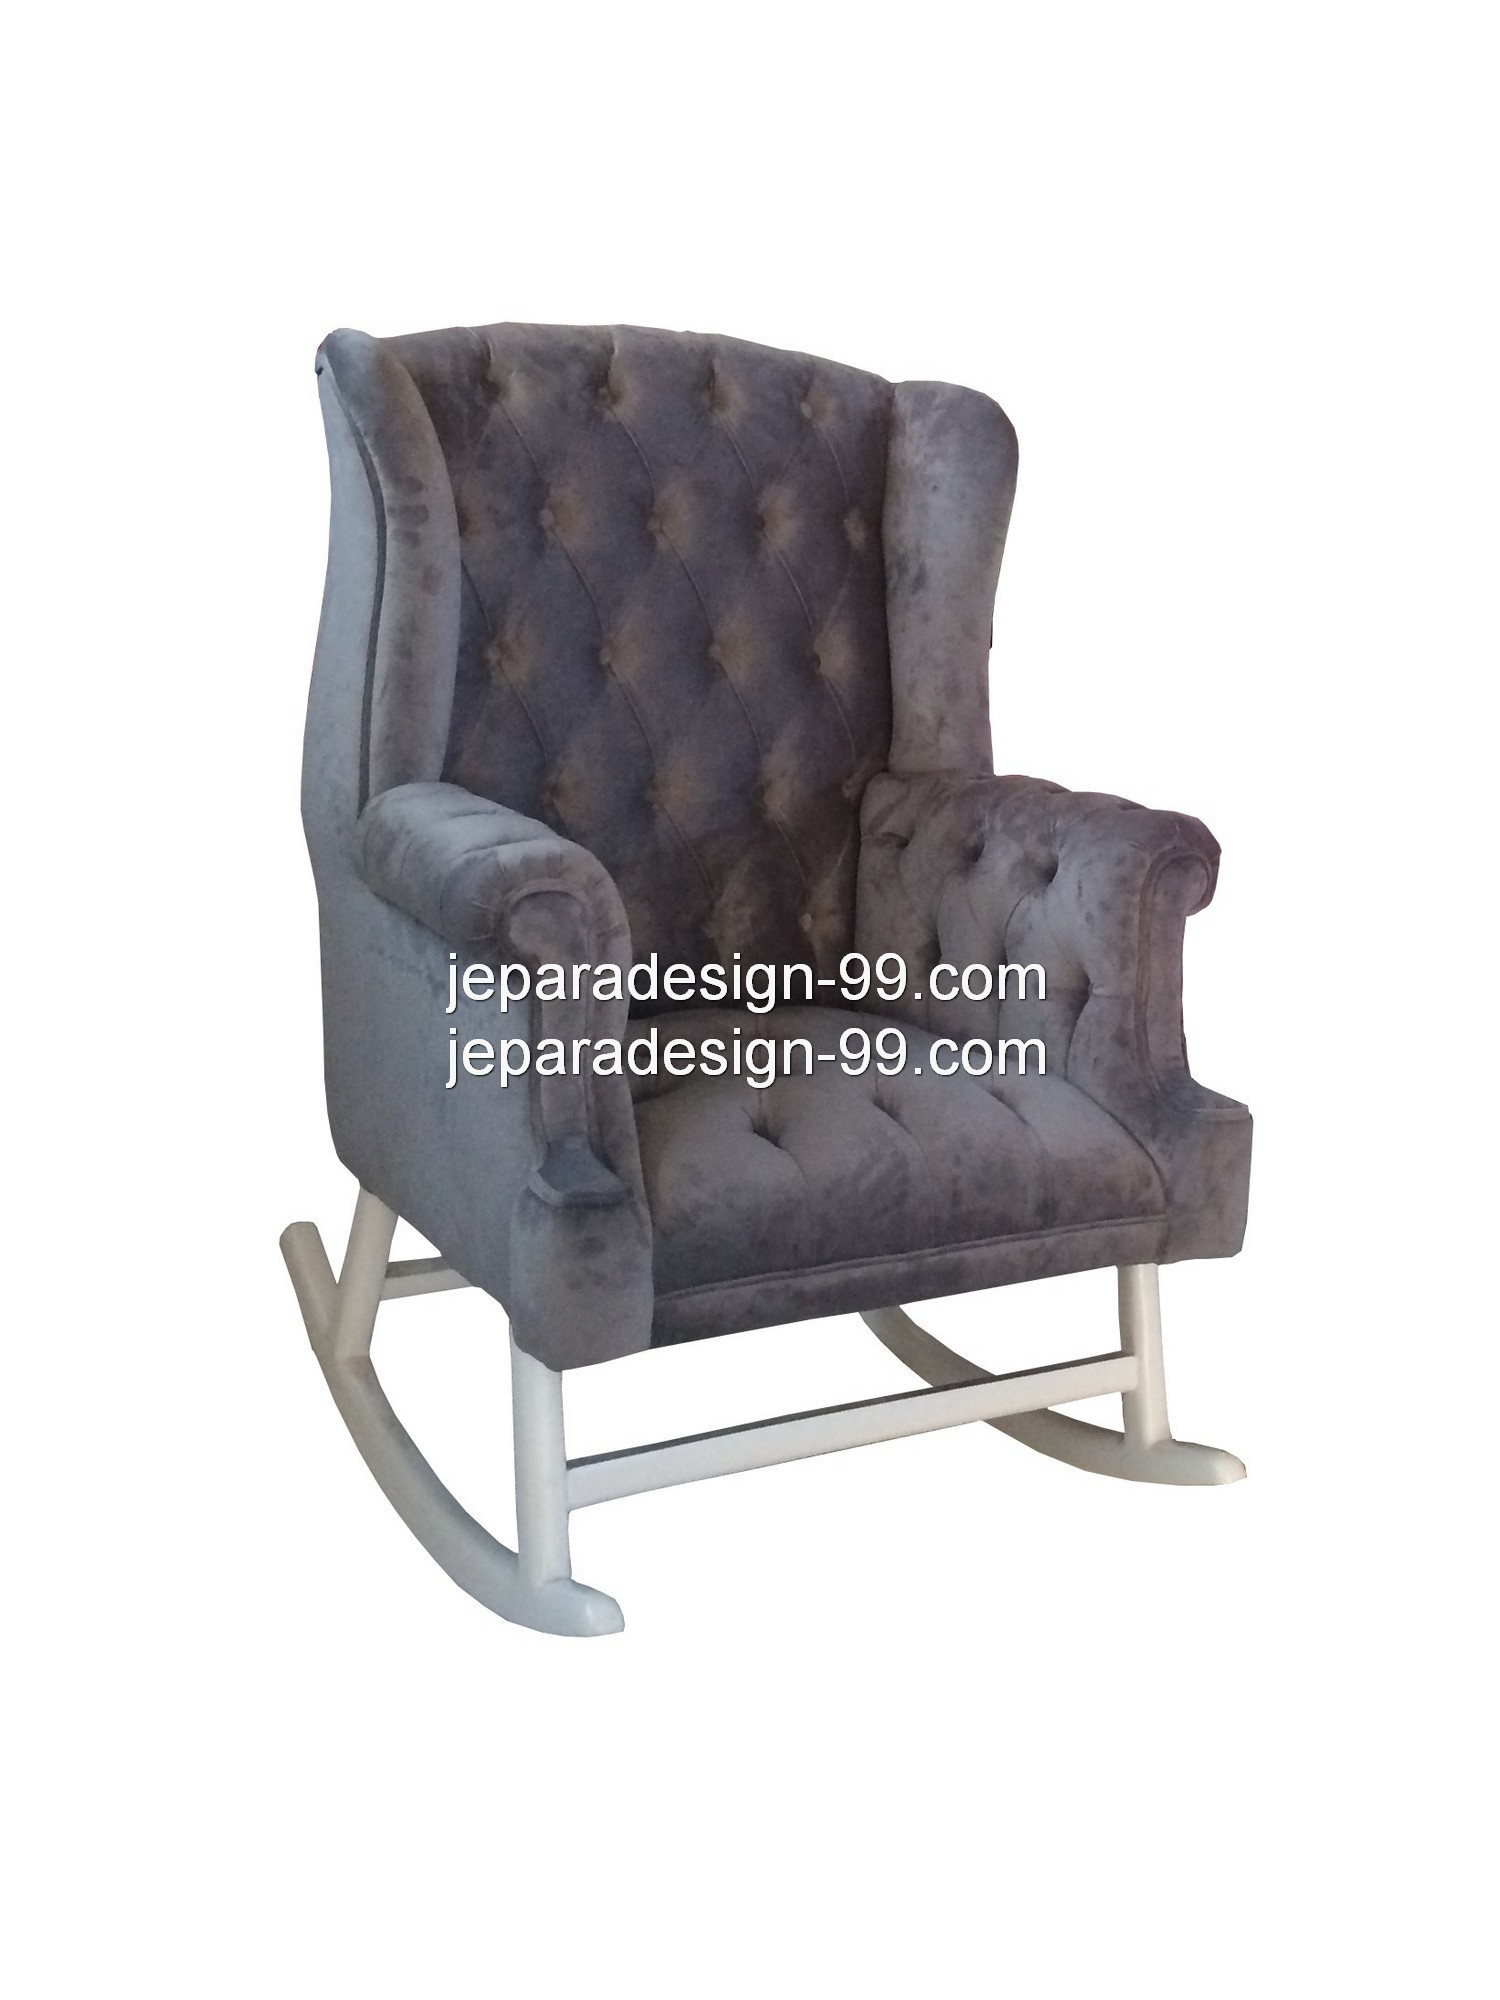 Elegant French Style Rocking Chair With French Style Rocking Chair